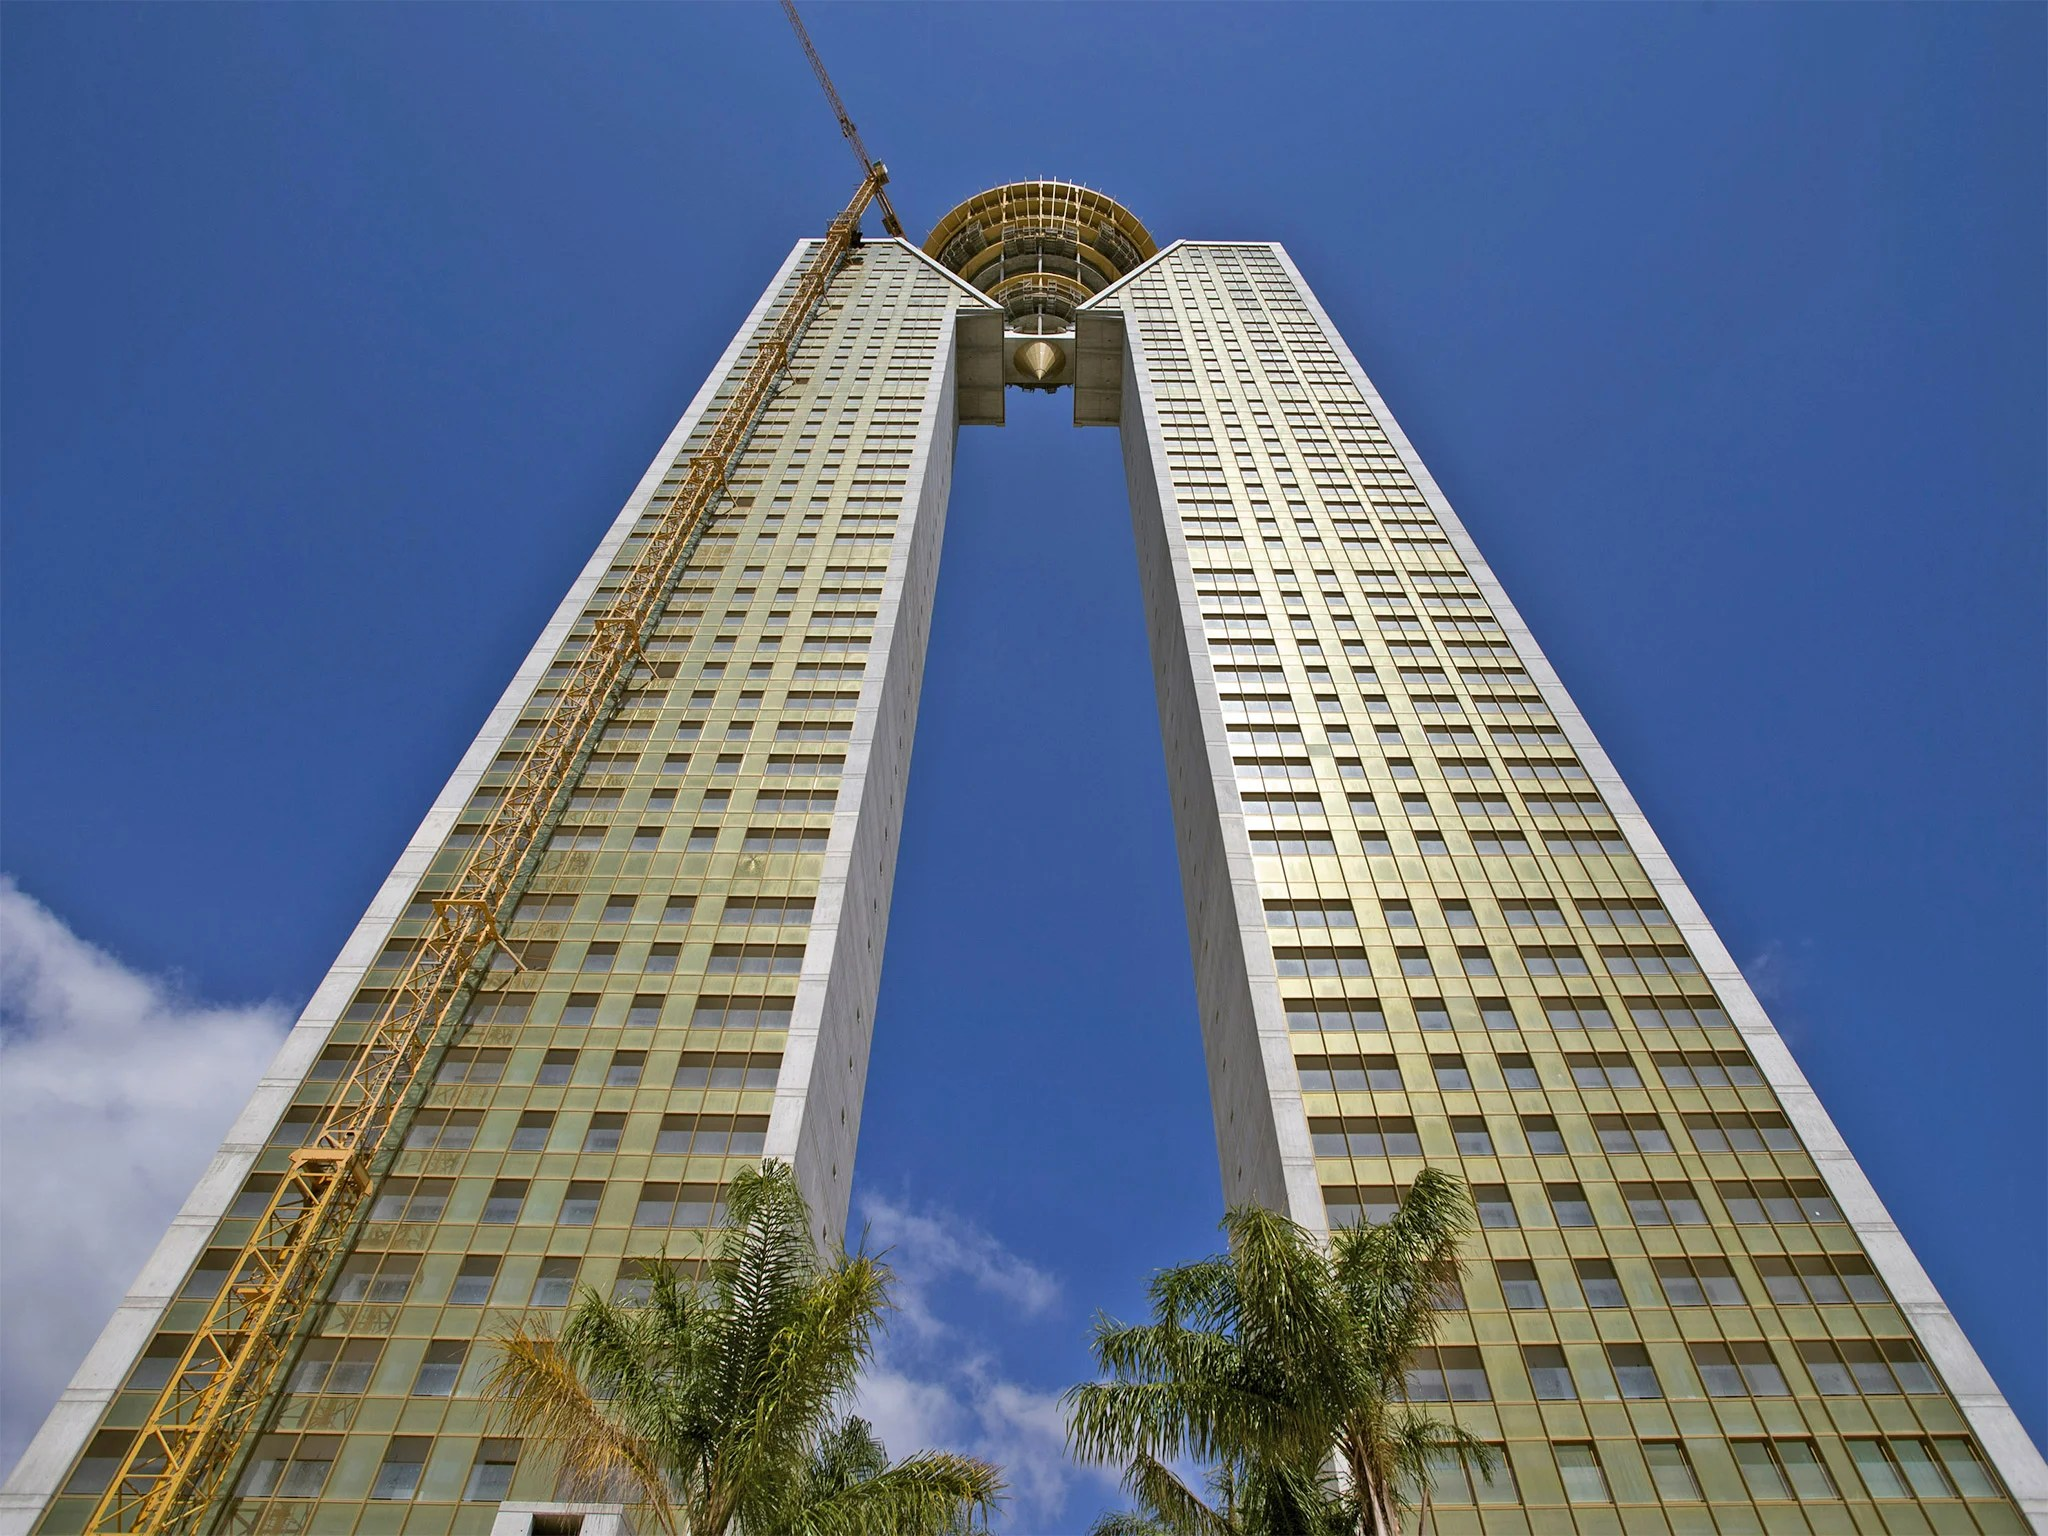 Futuristic Iphone X Wallpaper Benidorm S Towering Monument To Spain S Debt Disaster